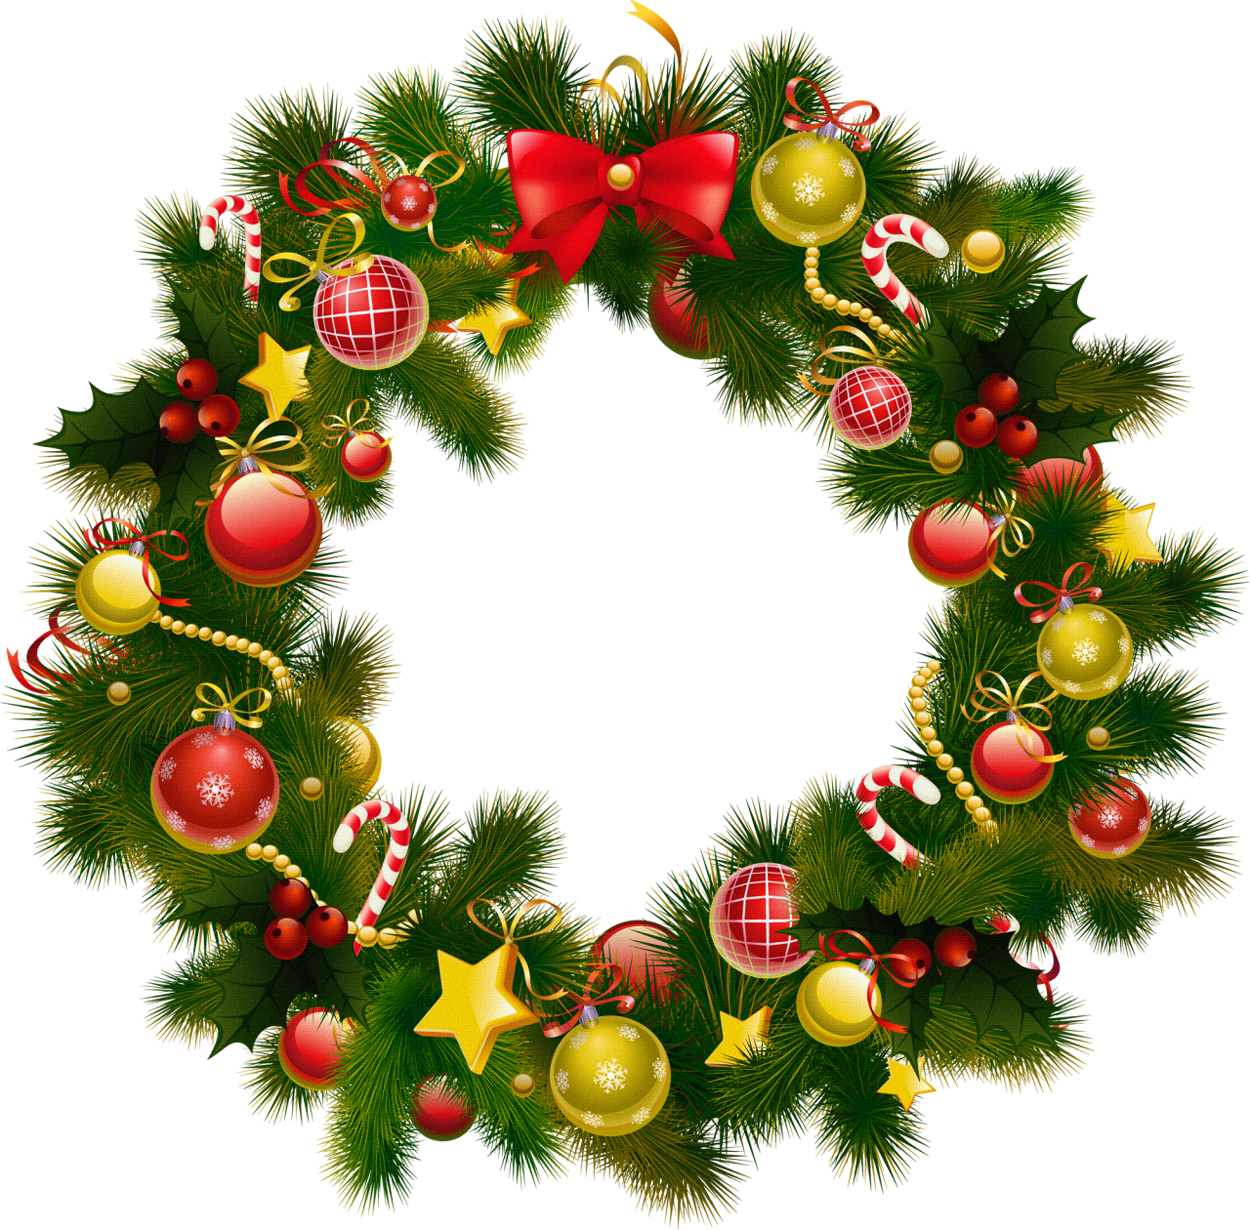 Photo frame clipart background. Christmas wreath vector png